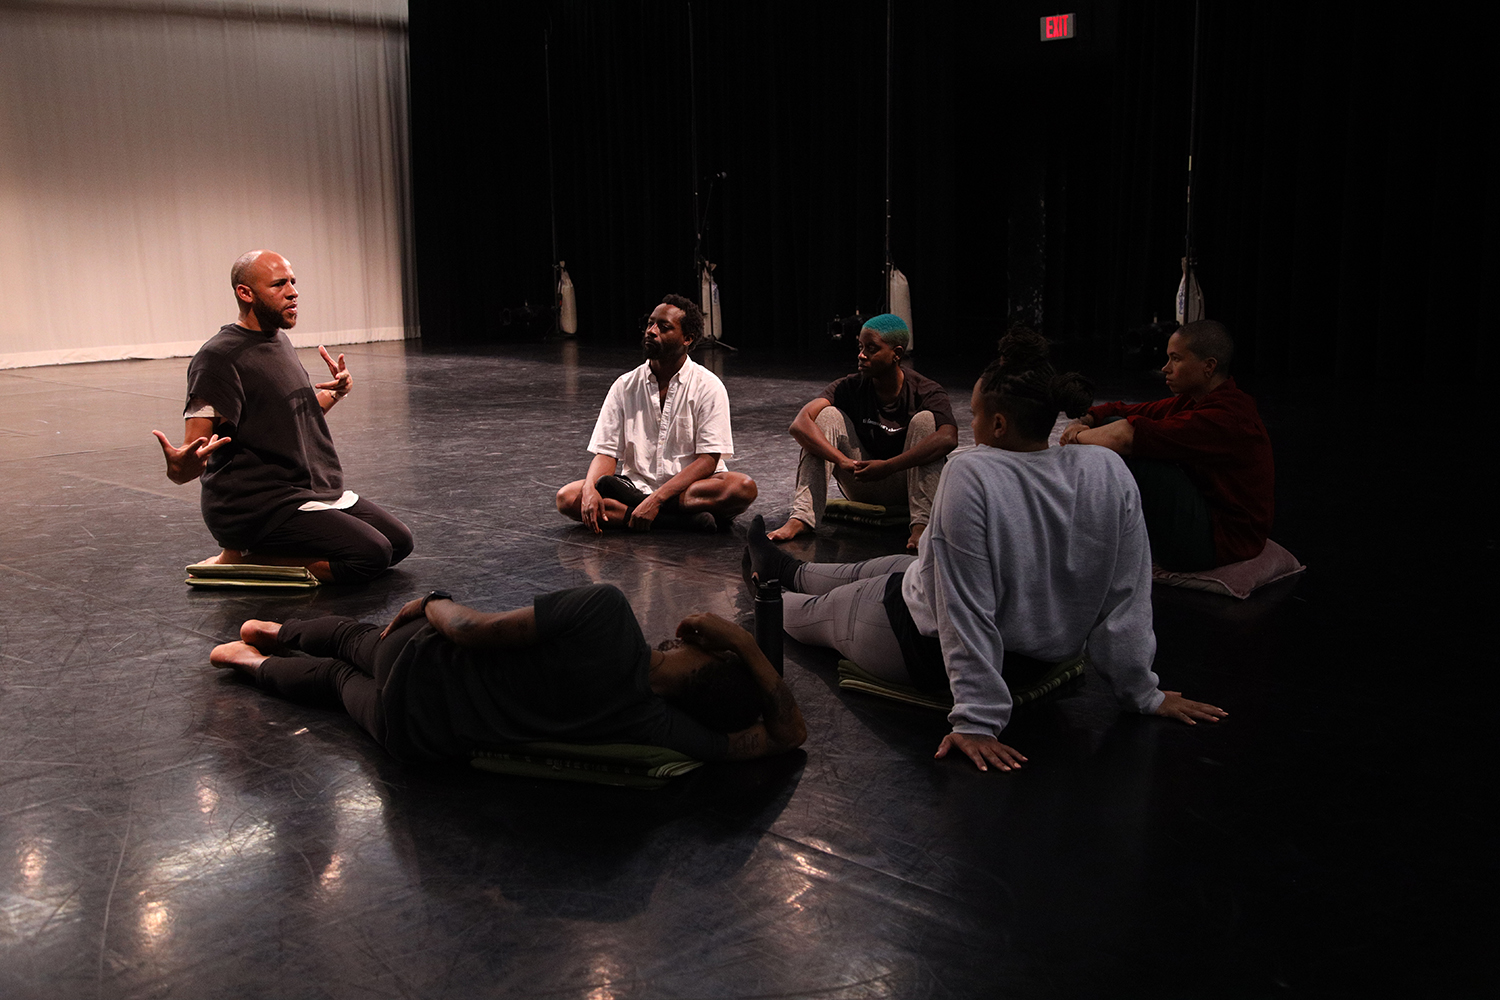 Five people sit or lay on cushions in a circle on a black floor, engaged in a rehearsal discussion, led by a person sitting upright and gesturing surrounded by black curtains and a white scrim.